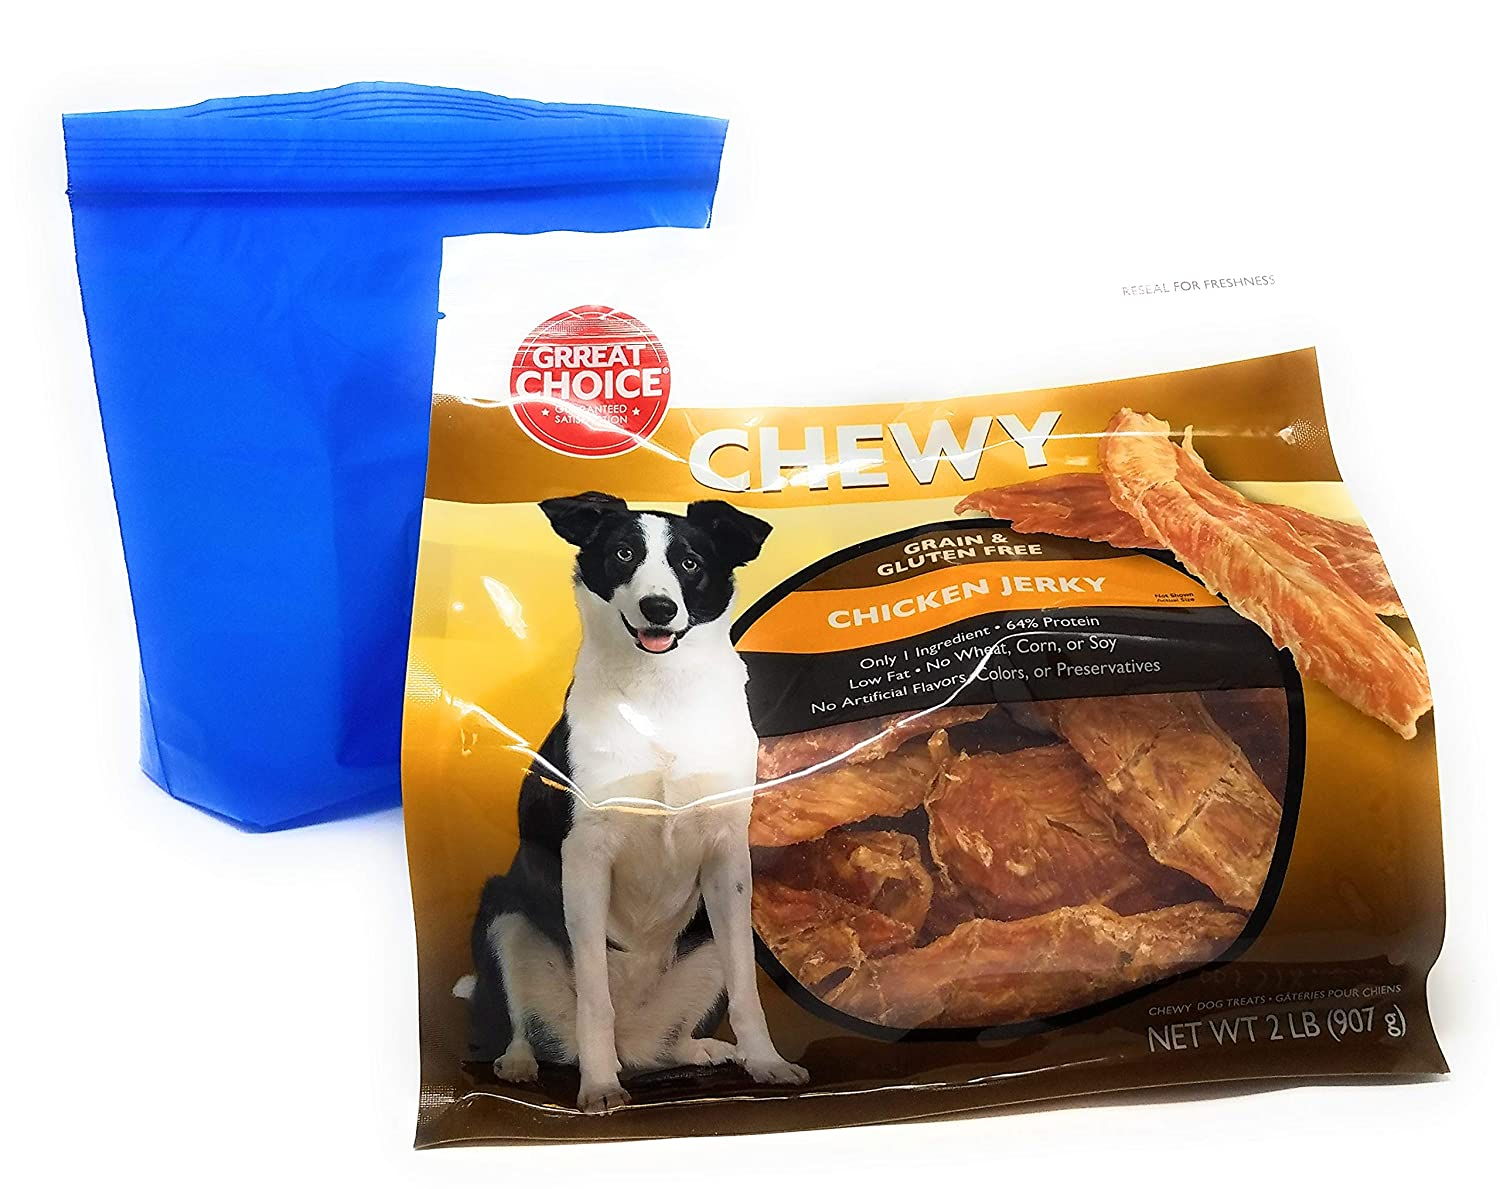 Grreat Choice Chewy Grain Free Chicken Jerky Dog Treats 2 Pounds and Tesadorz Resealable Bags